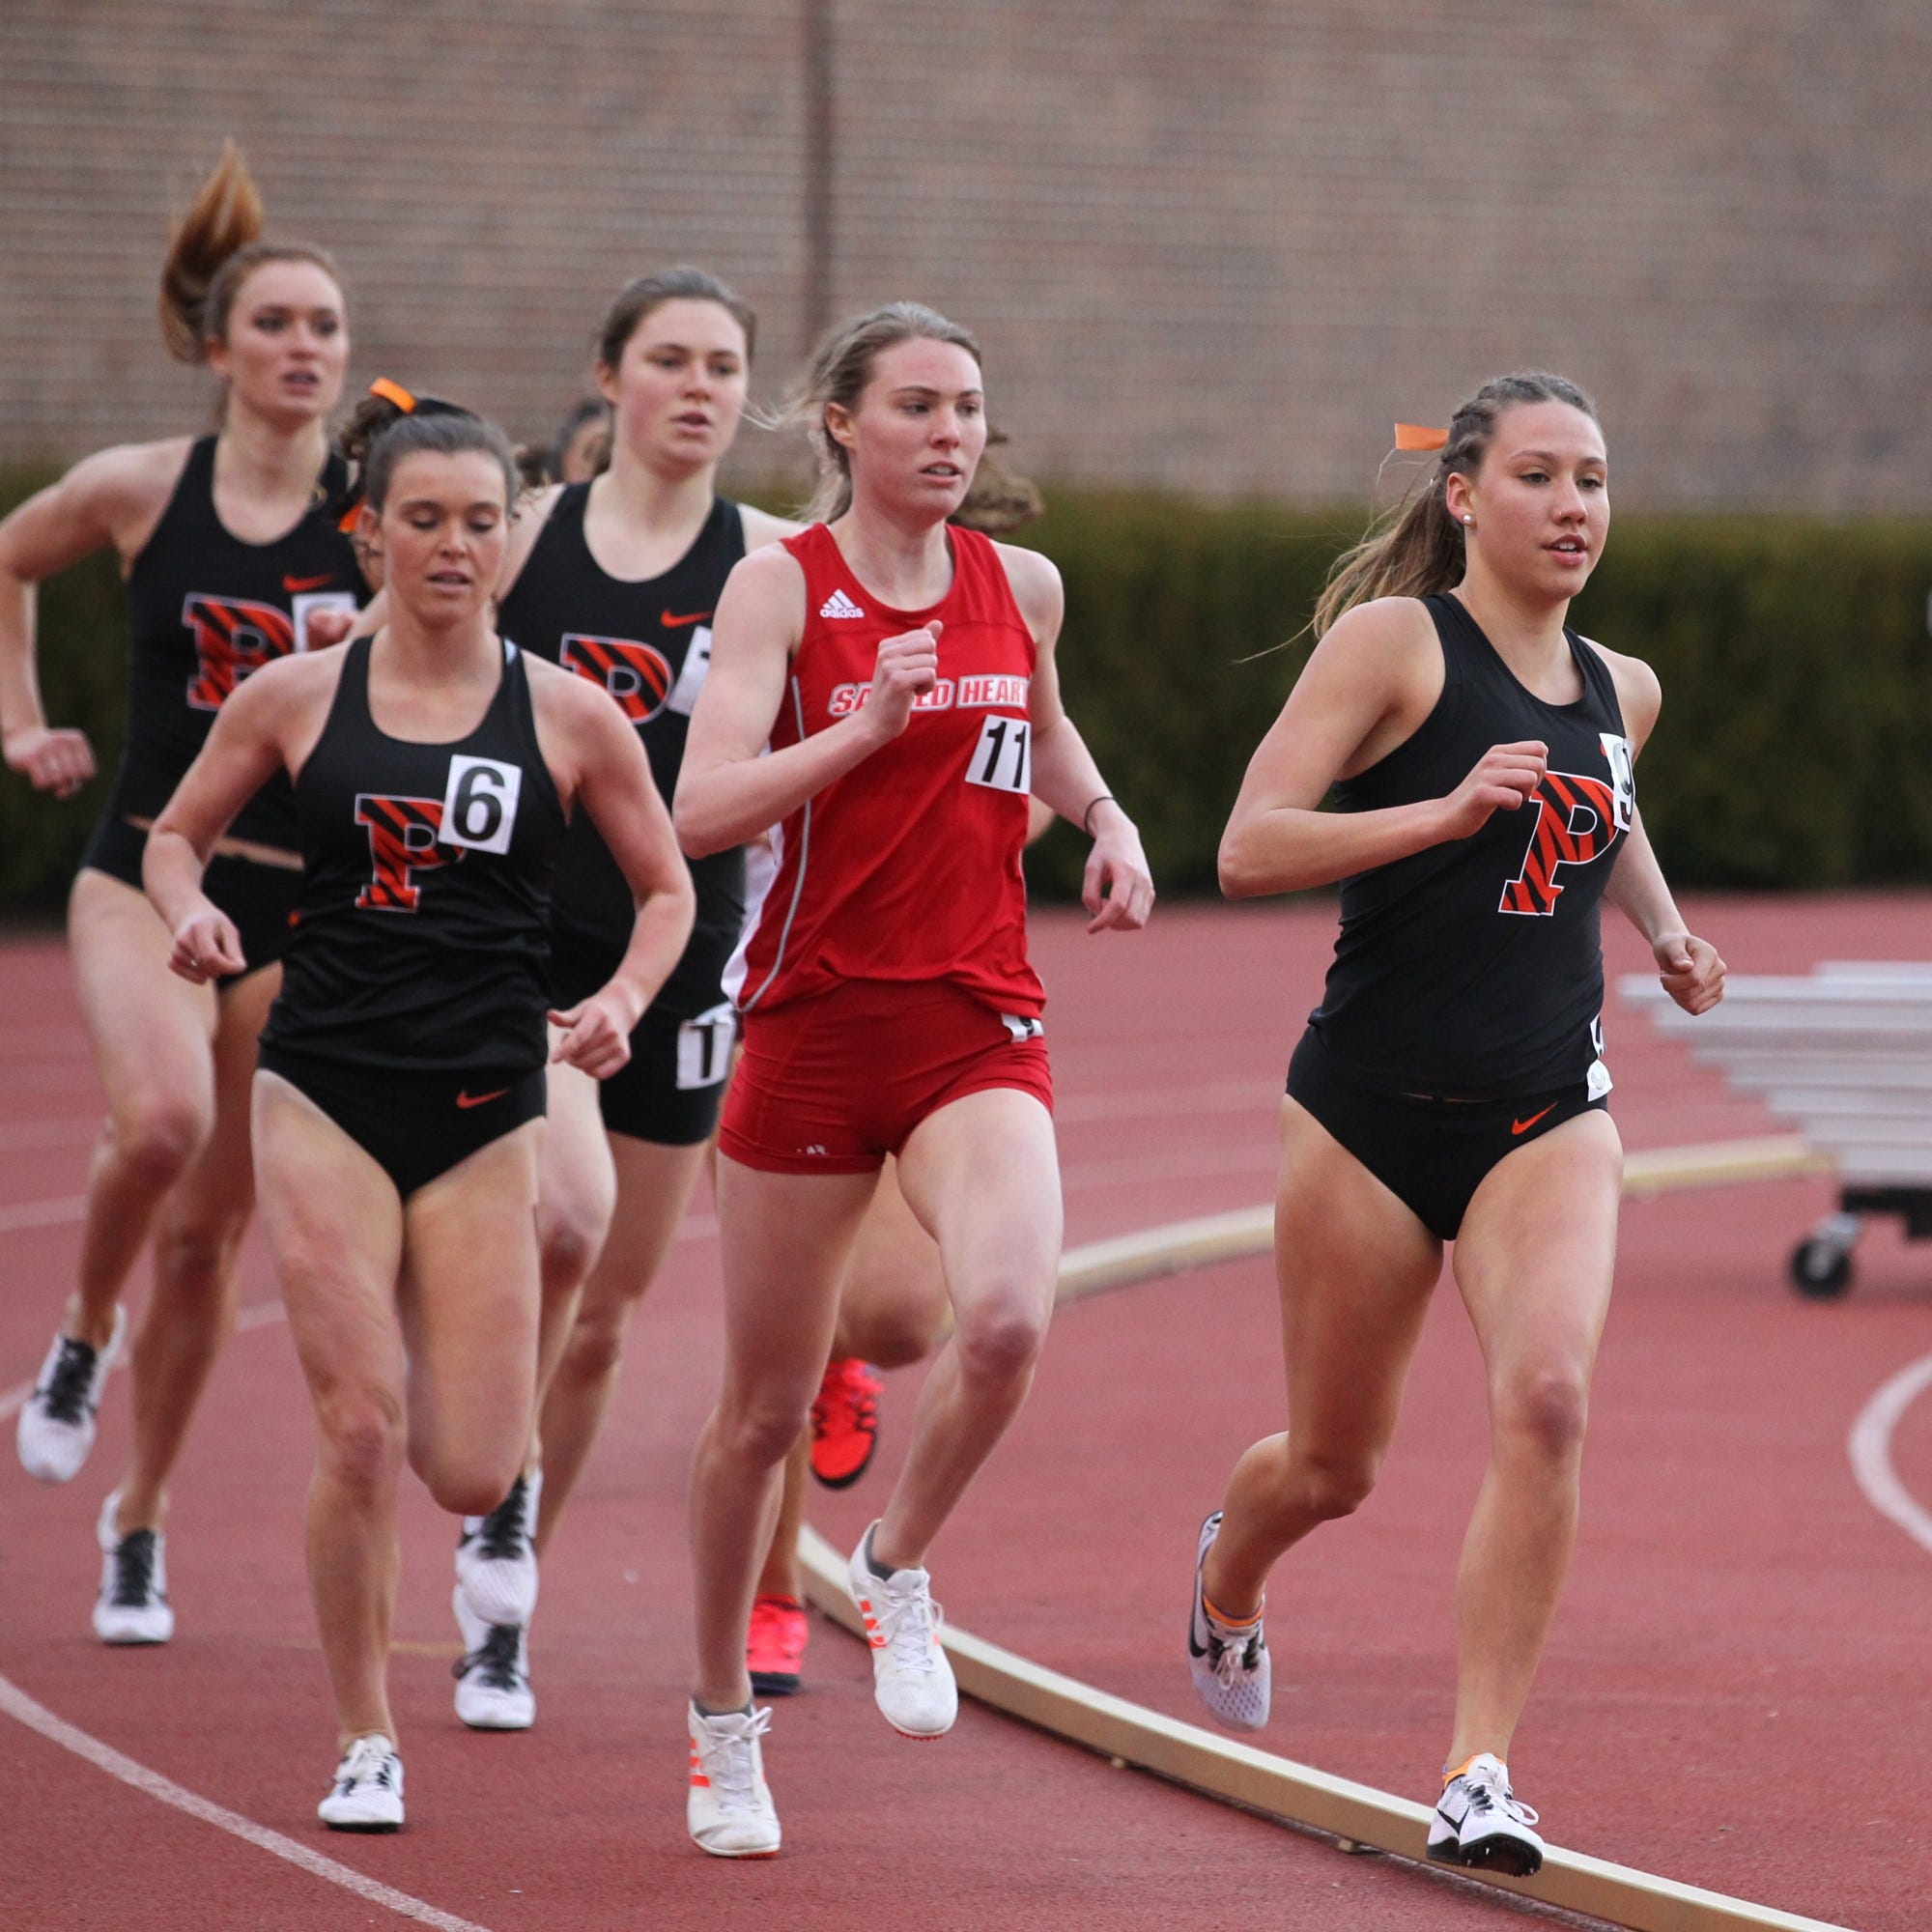 Sunshine and success: Sierra Castaneda achieving personal bests at Princeton